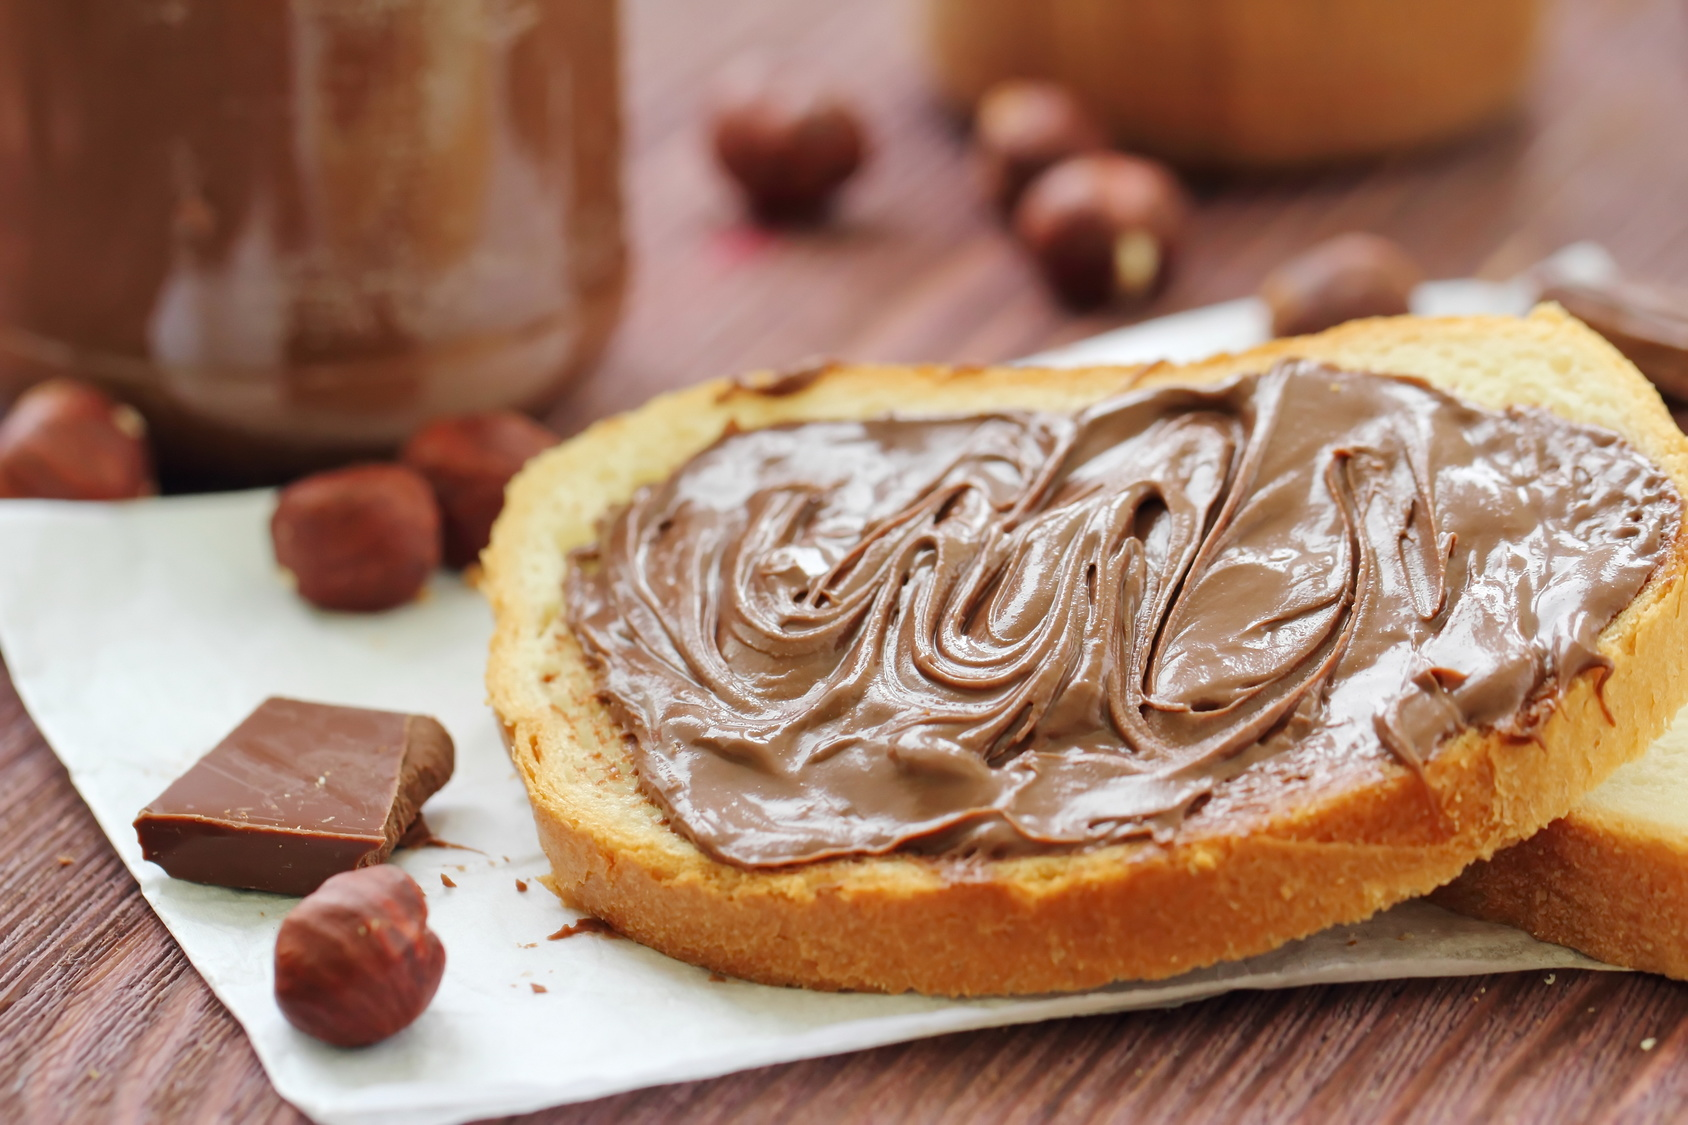 Isst du Nutella mit Butter drunter?